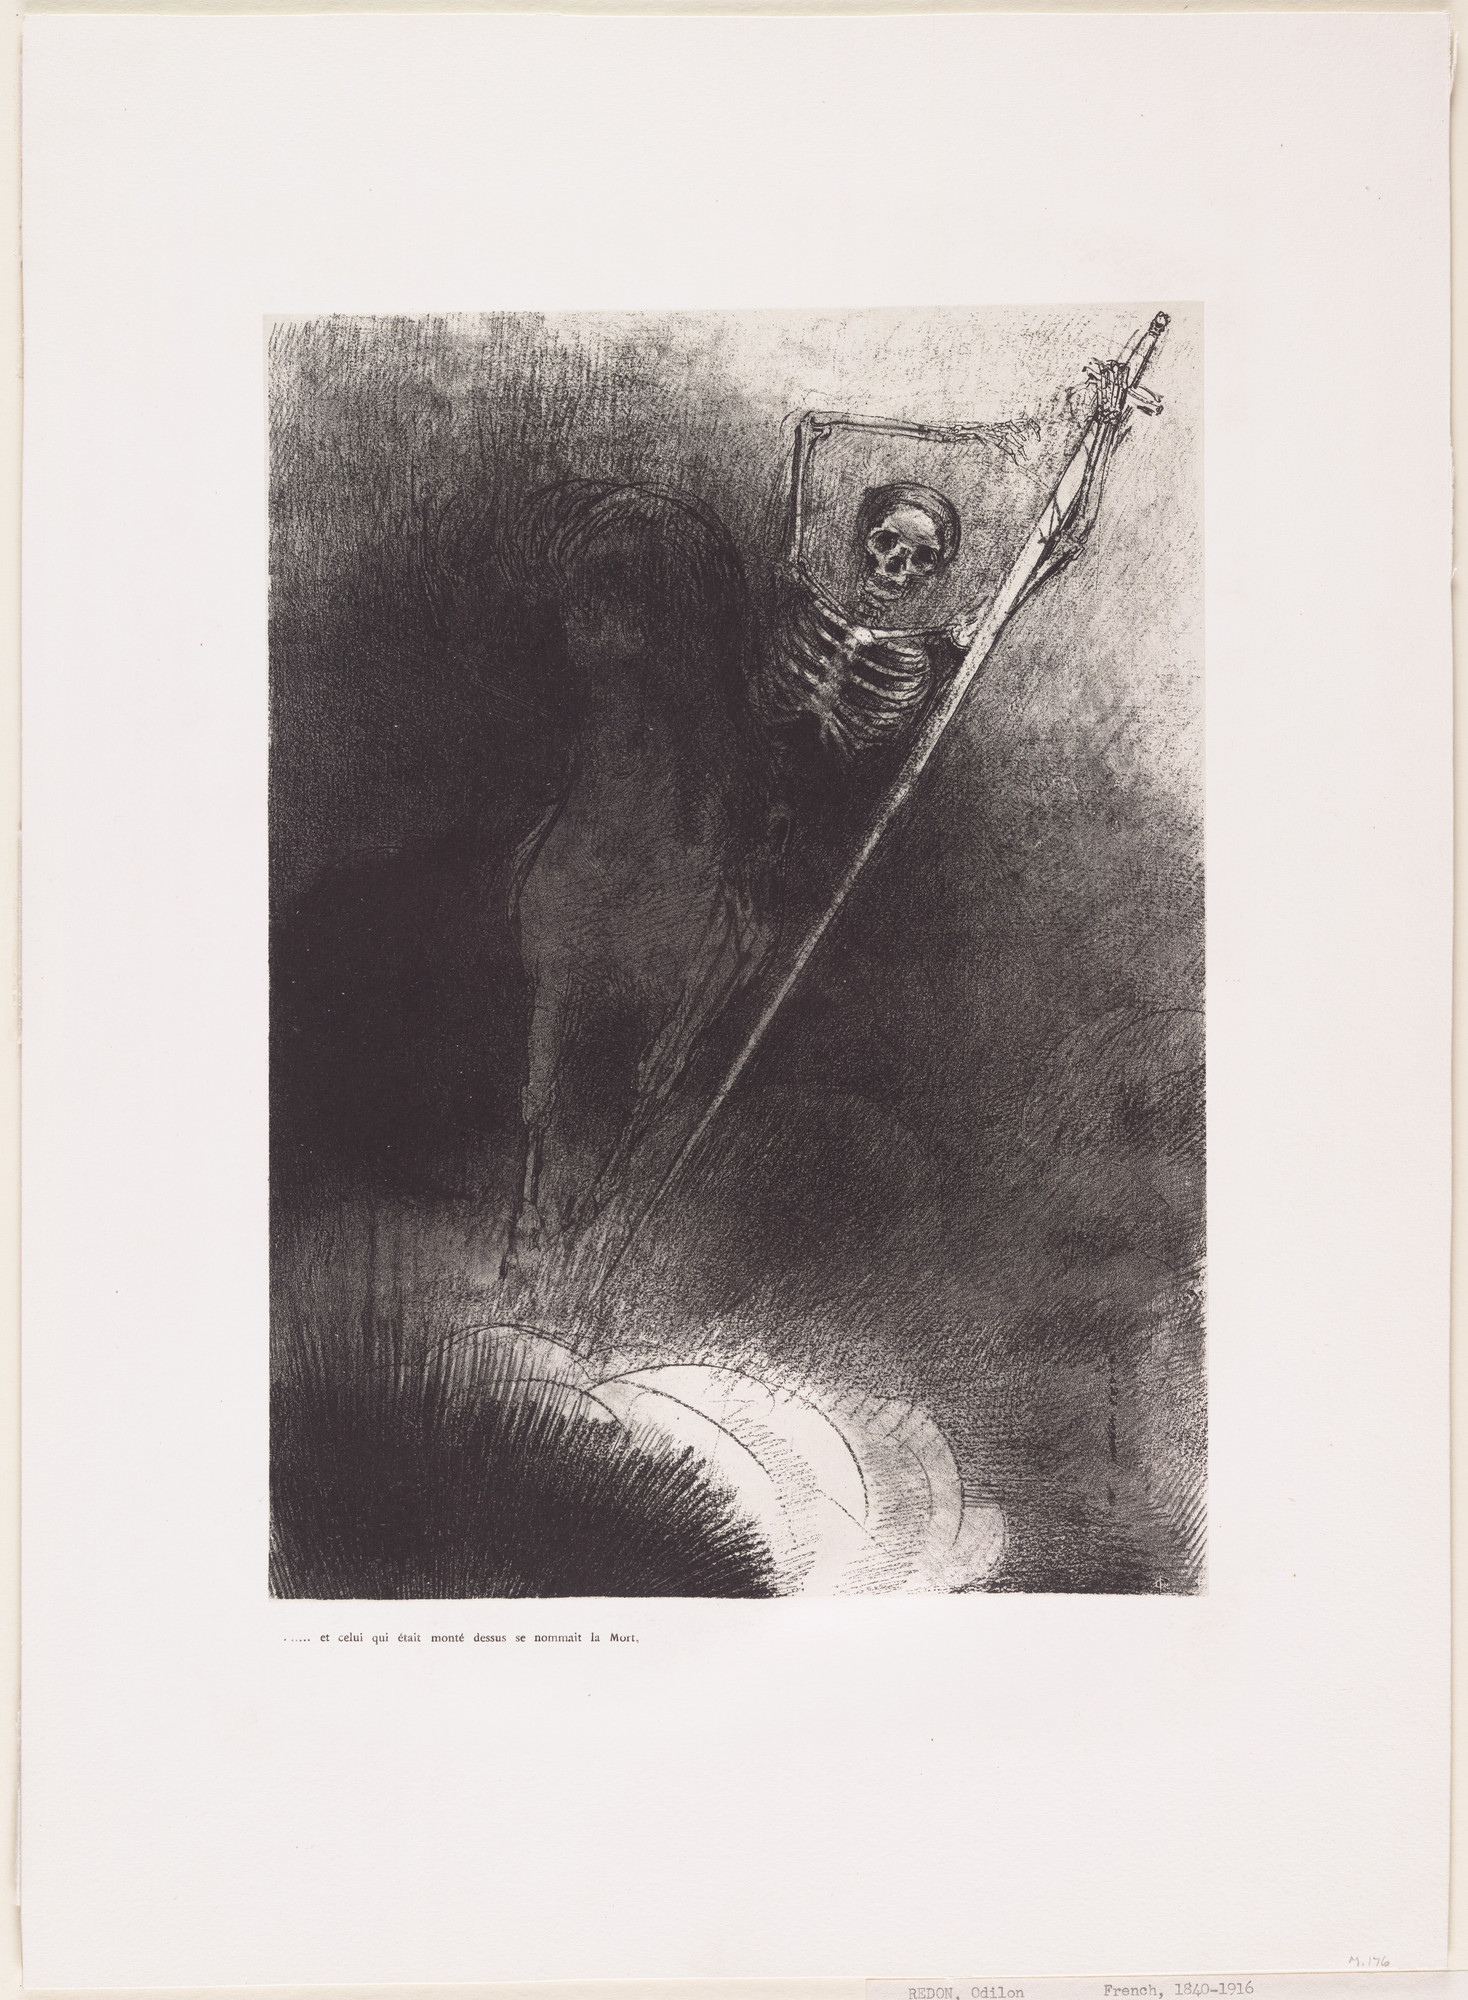 Odilon Redon. . . . And His Name That Sat on Him Was Death (. . . et celui qui était monté dessus se nommait la Mort). 1899